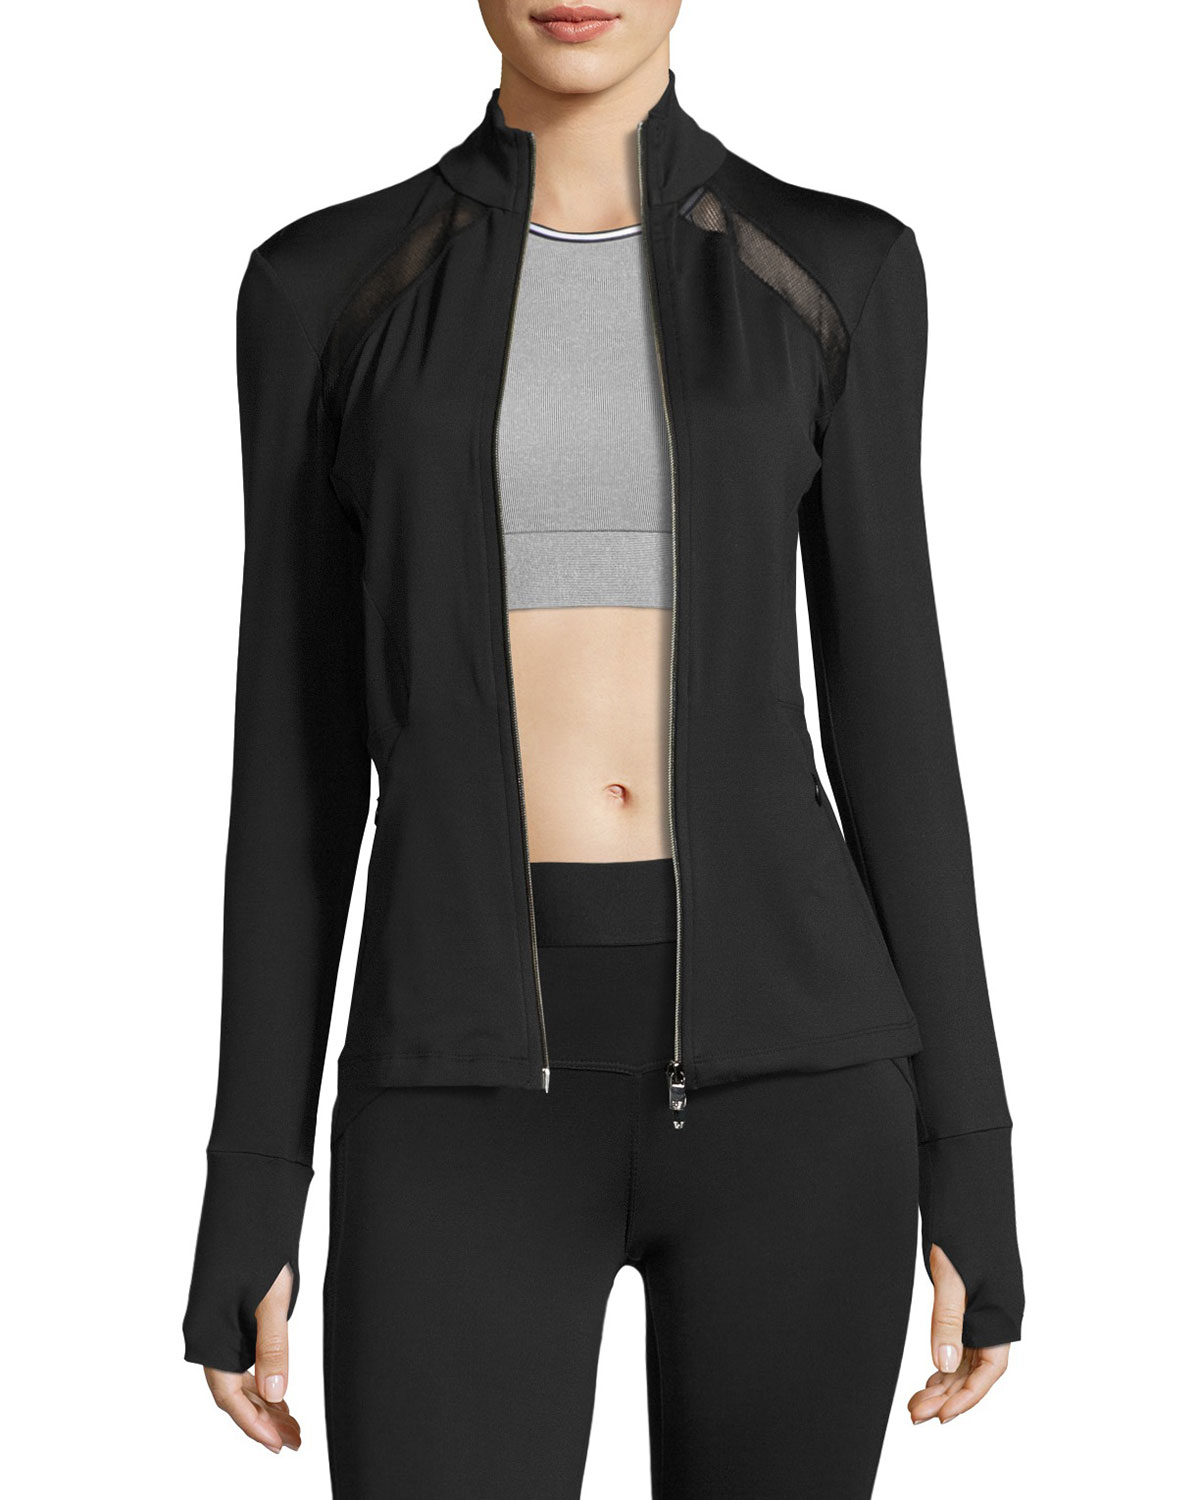 HEROINE SPORT Studio Mesh-Trim Full-Zip Jacket, Black